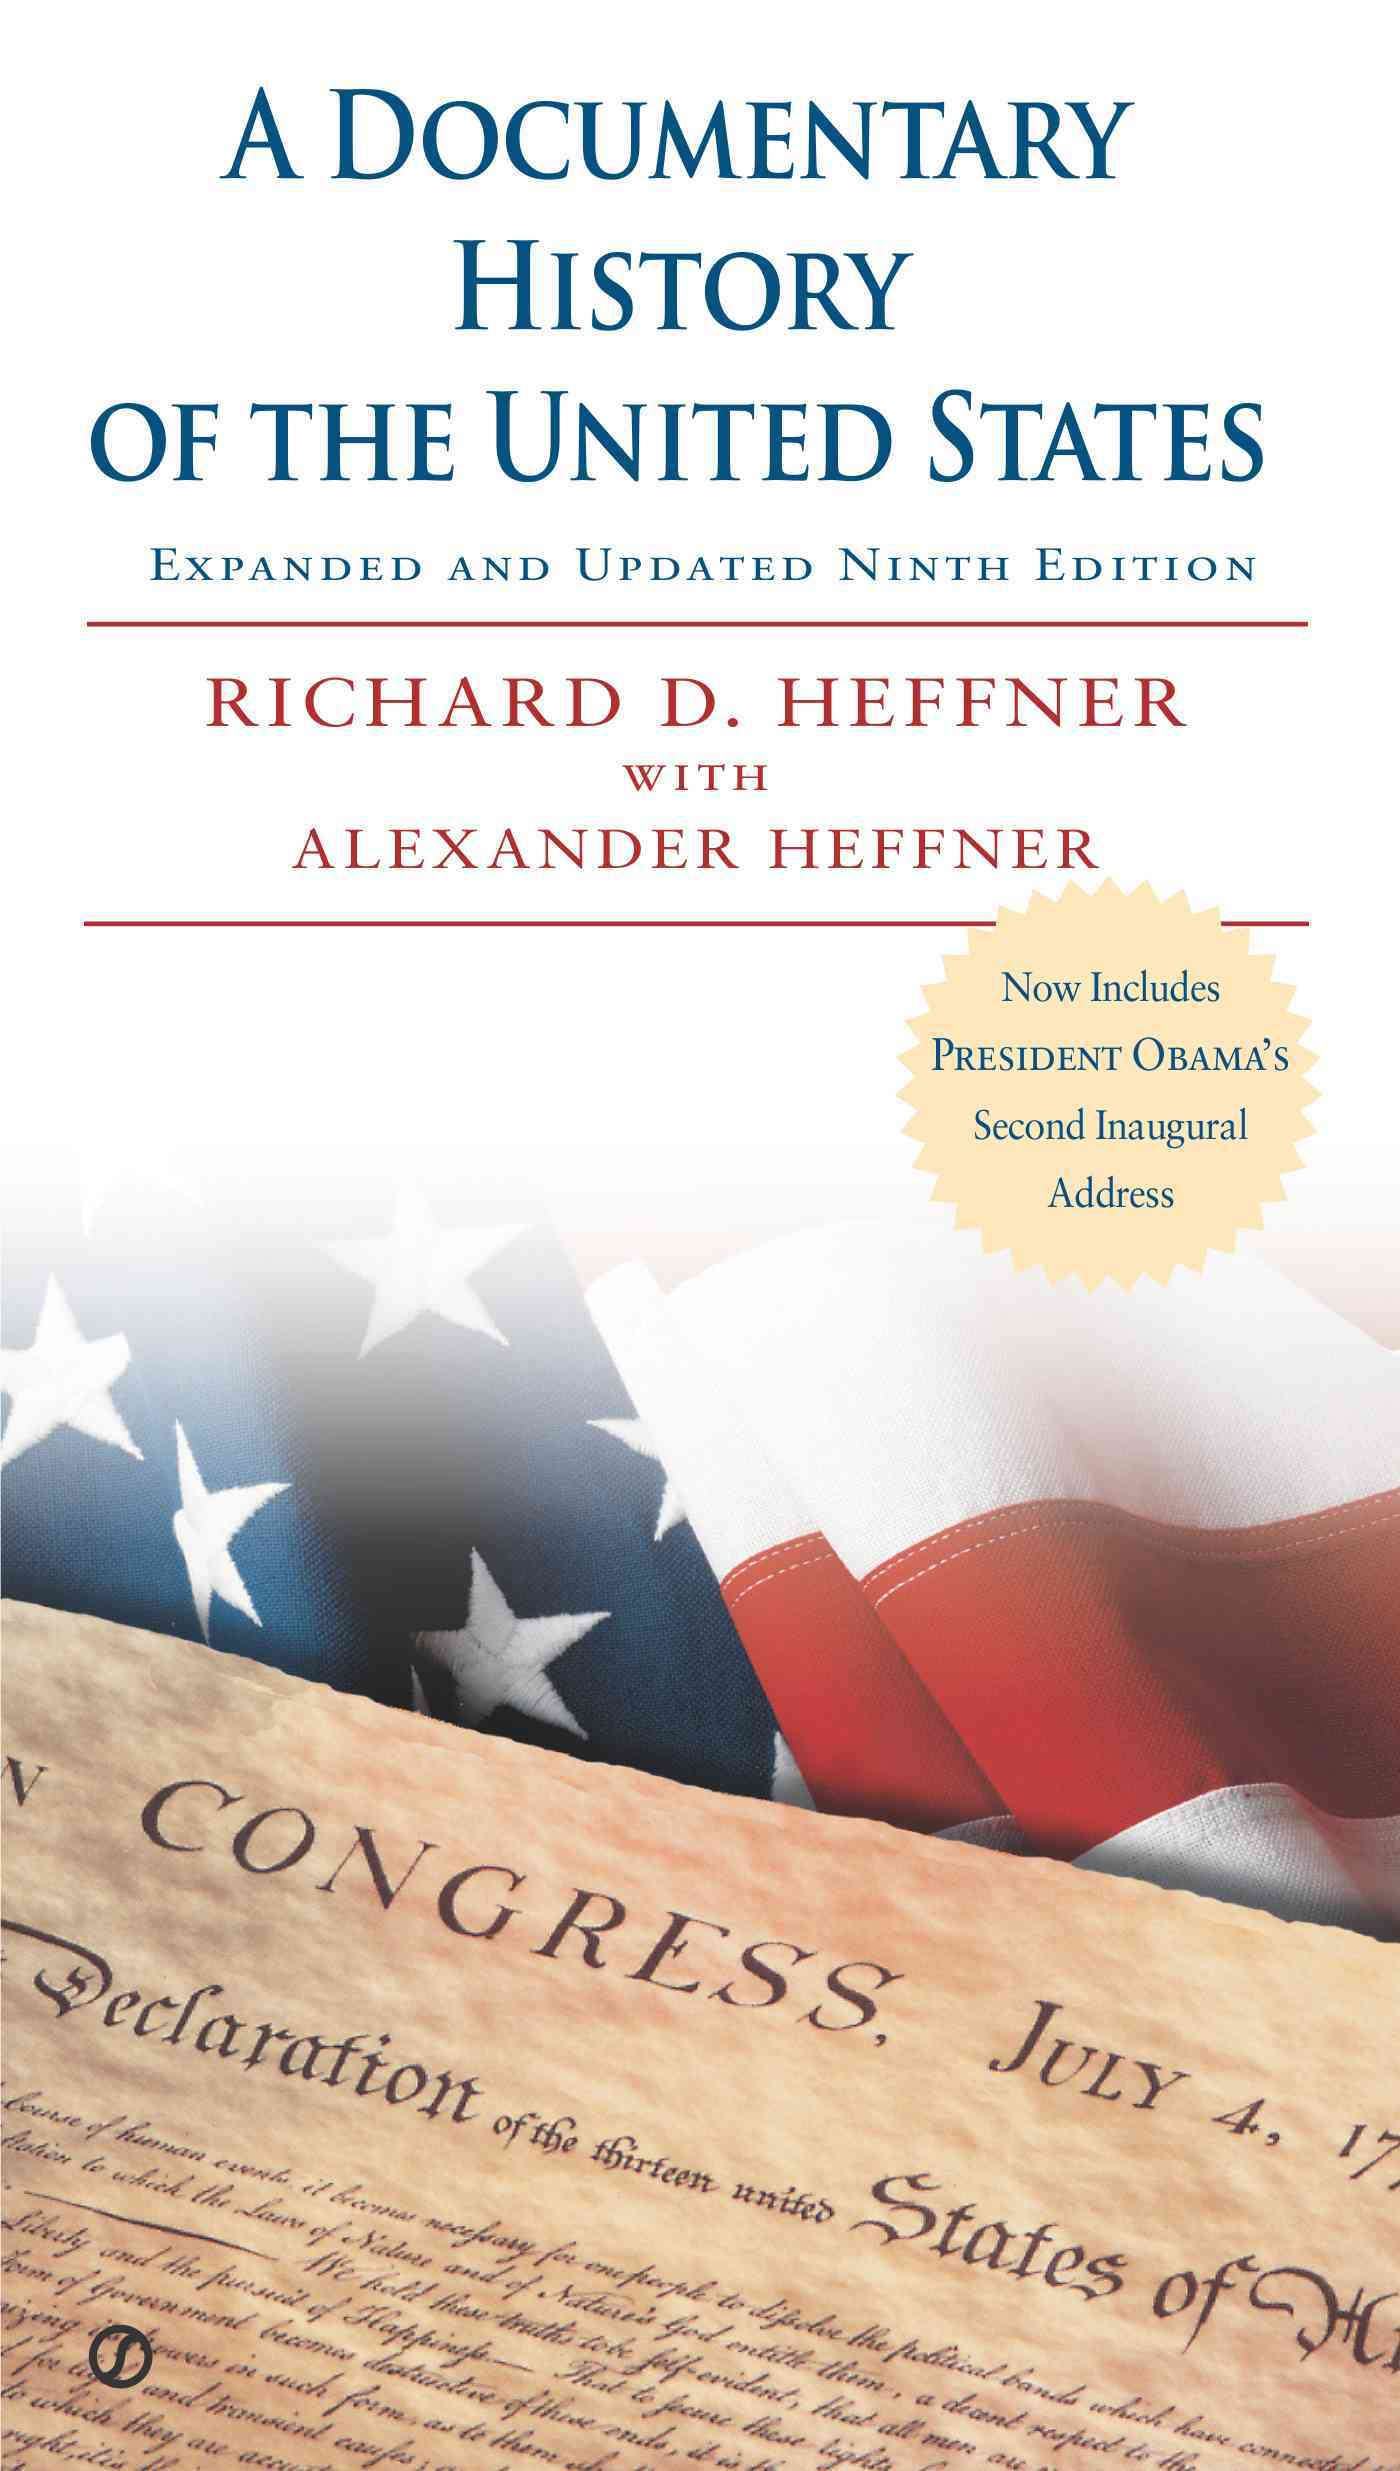 A Documentary History of the United States By Heffner, Richard D./ Heffner, Alexander